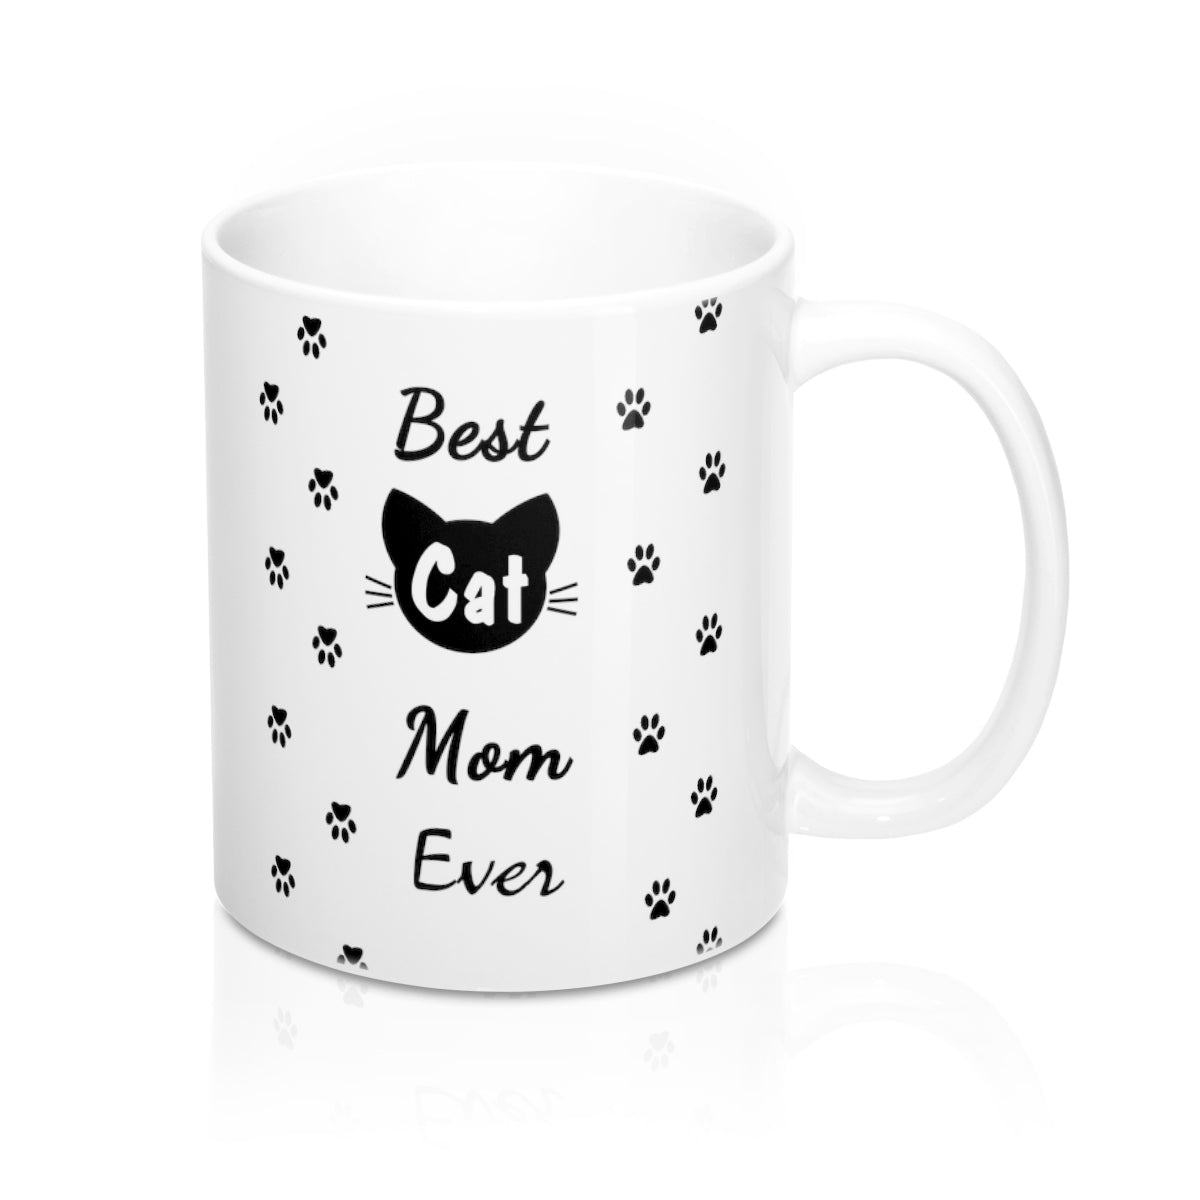 Best Cat Mom Ever Mug 11oz